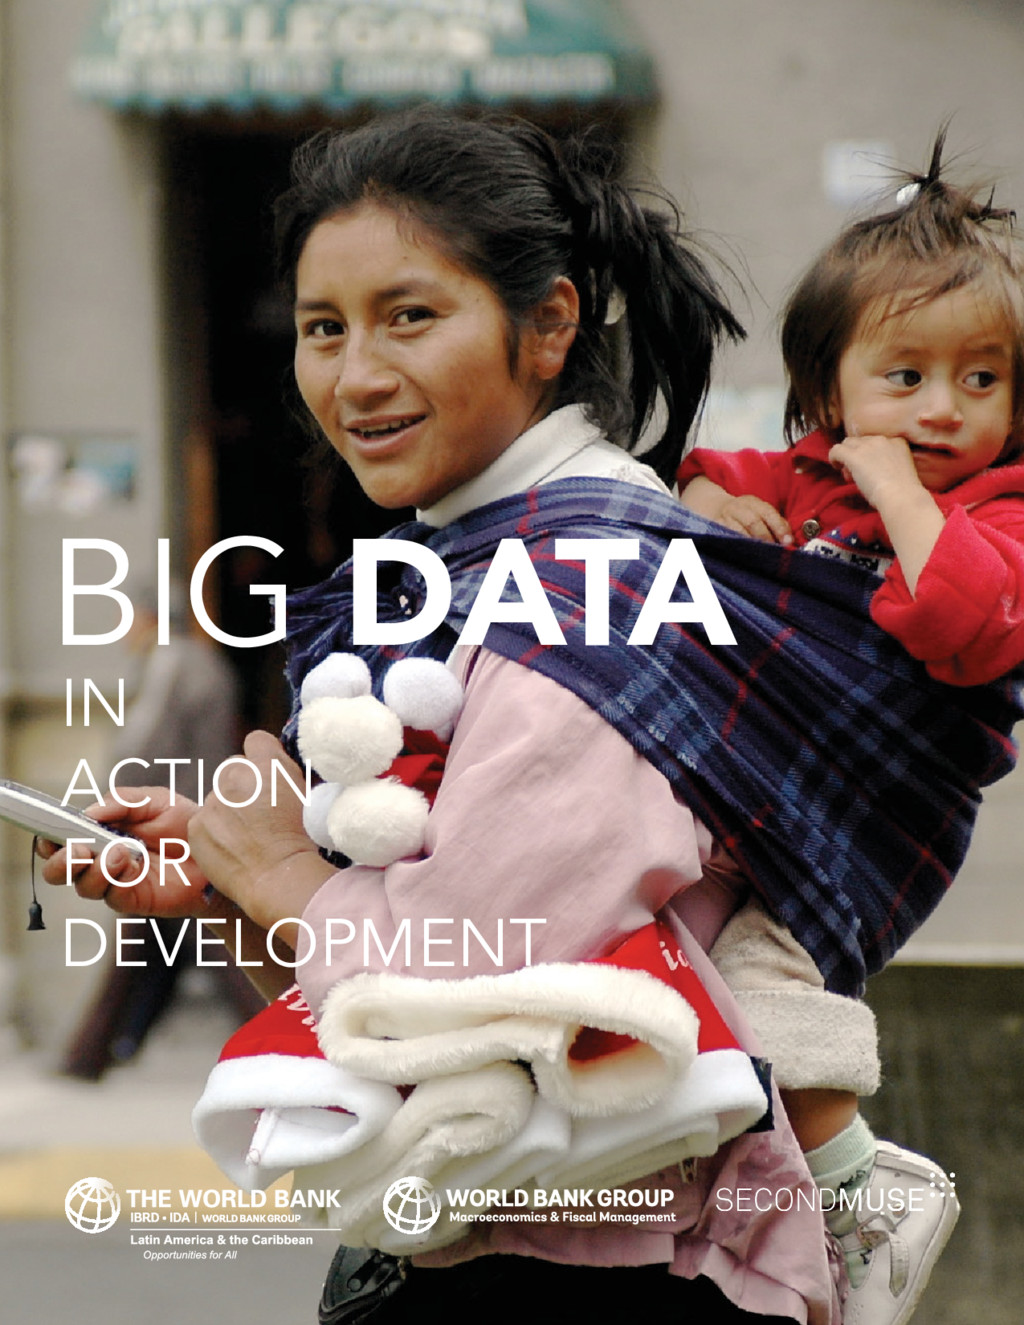 BIG DATA FOR DEVELOPMENT IN ACTION